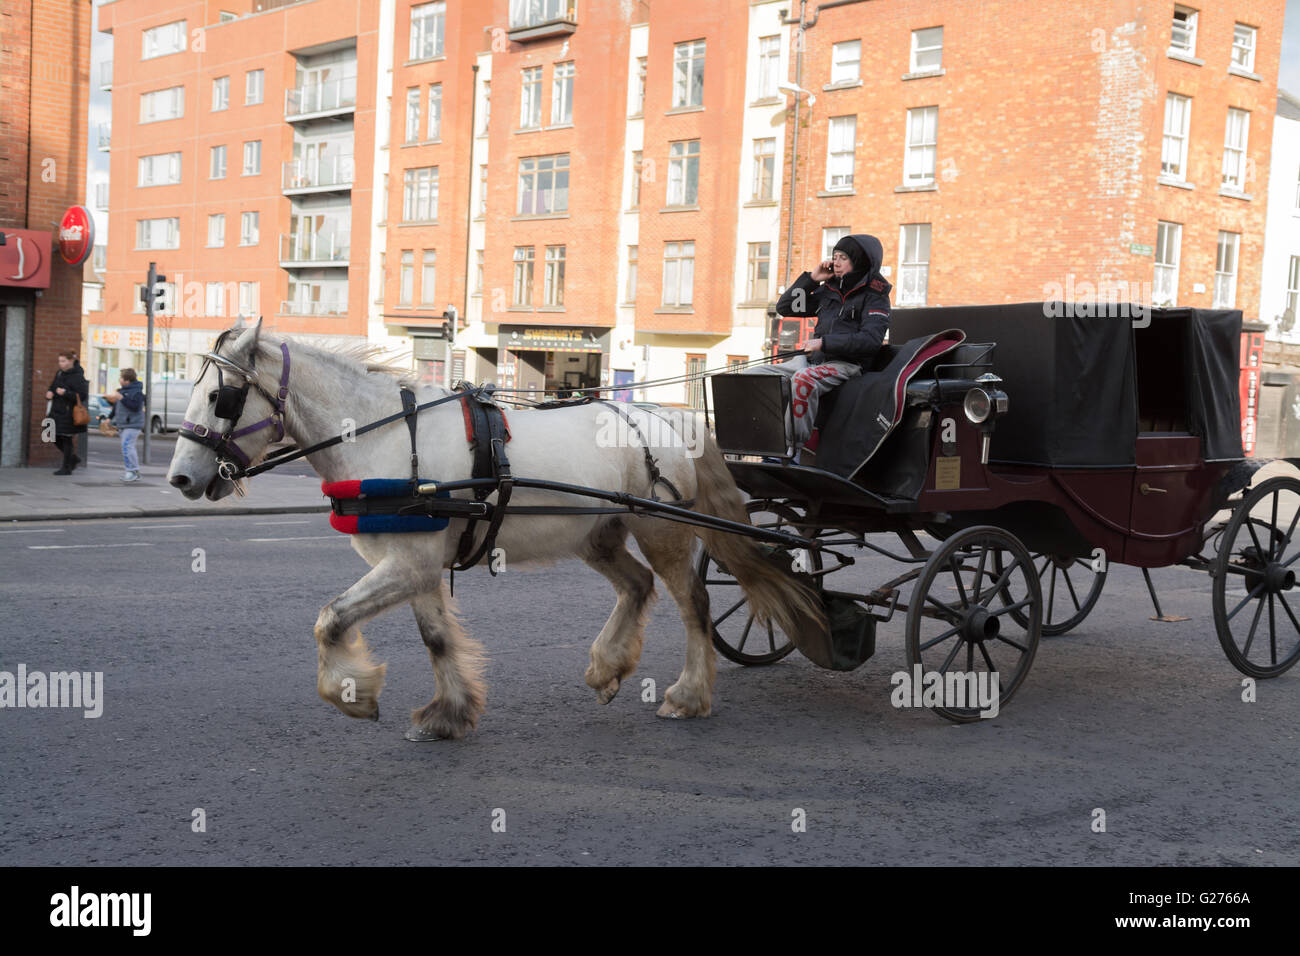 Youth driving a horse drawn carriage and using mobile phone in The Liberties area of Dublin at the junction of  - Stock Image